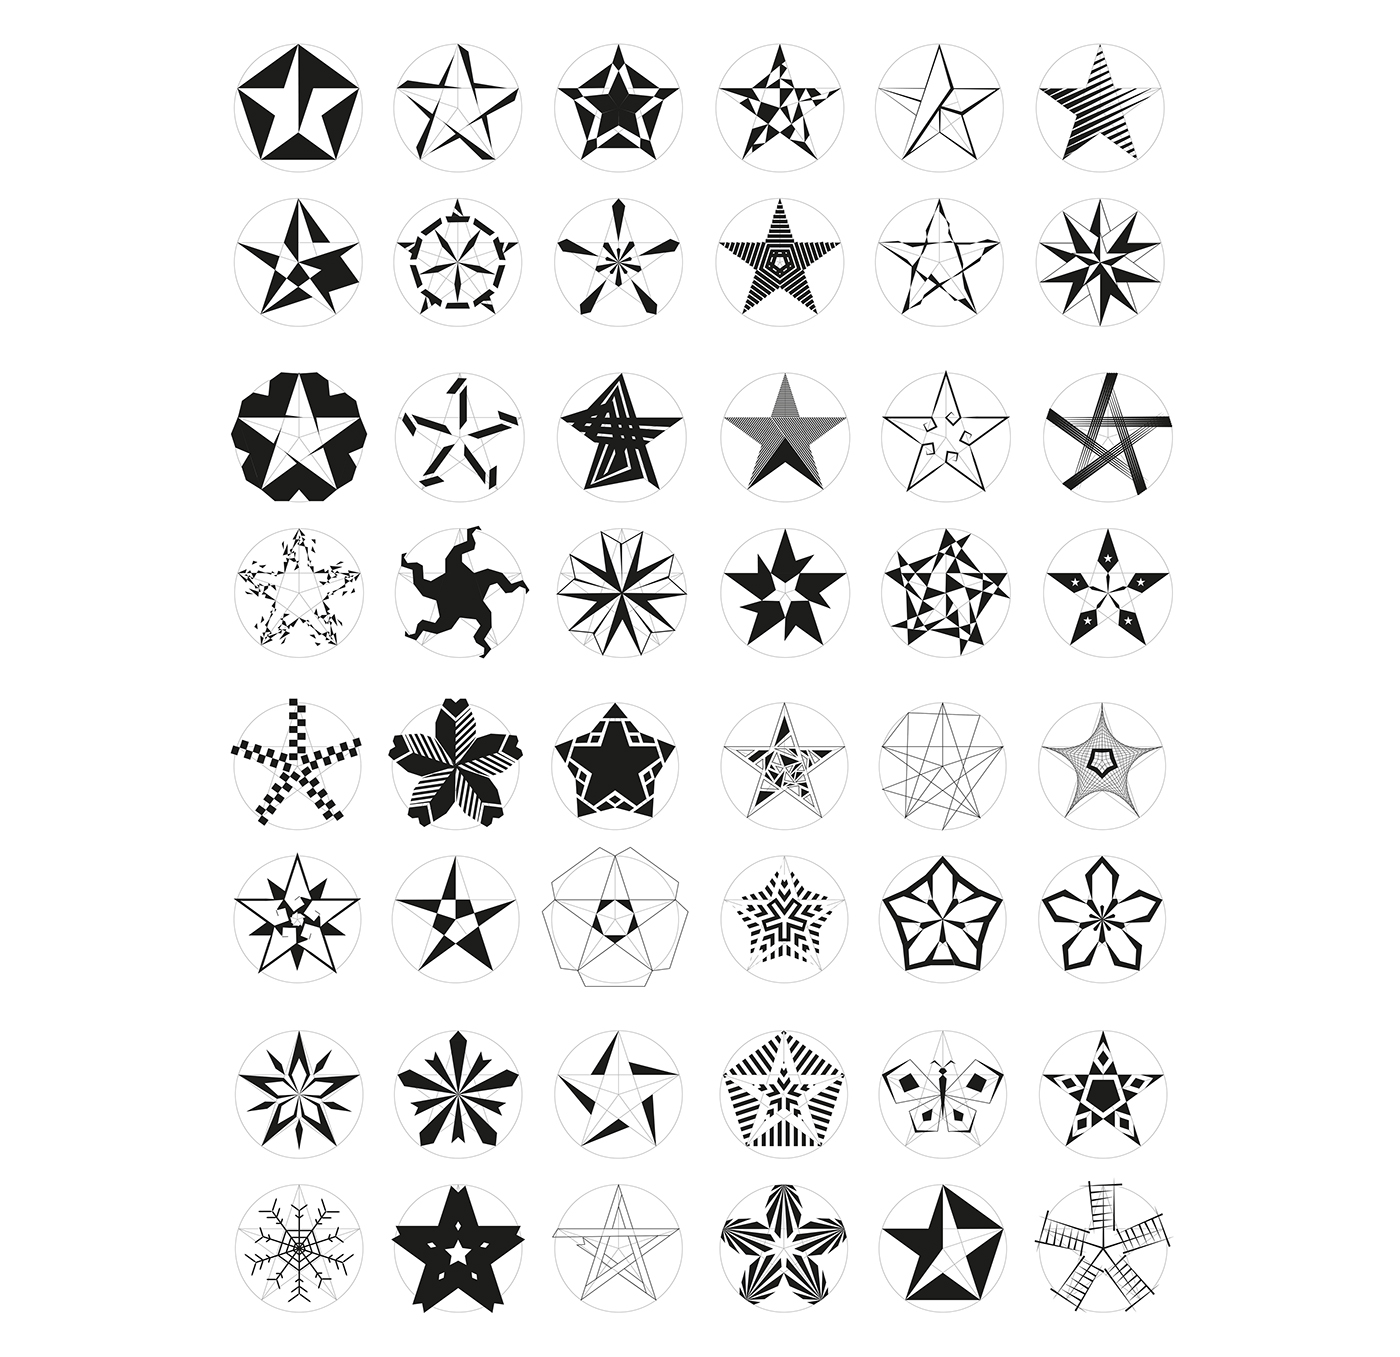 Five pointed star symbol design on behance 1st trial digital draft biocorpaavc Image collections